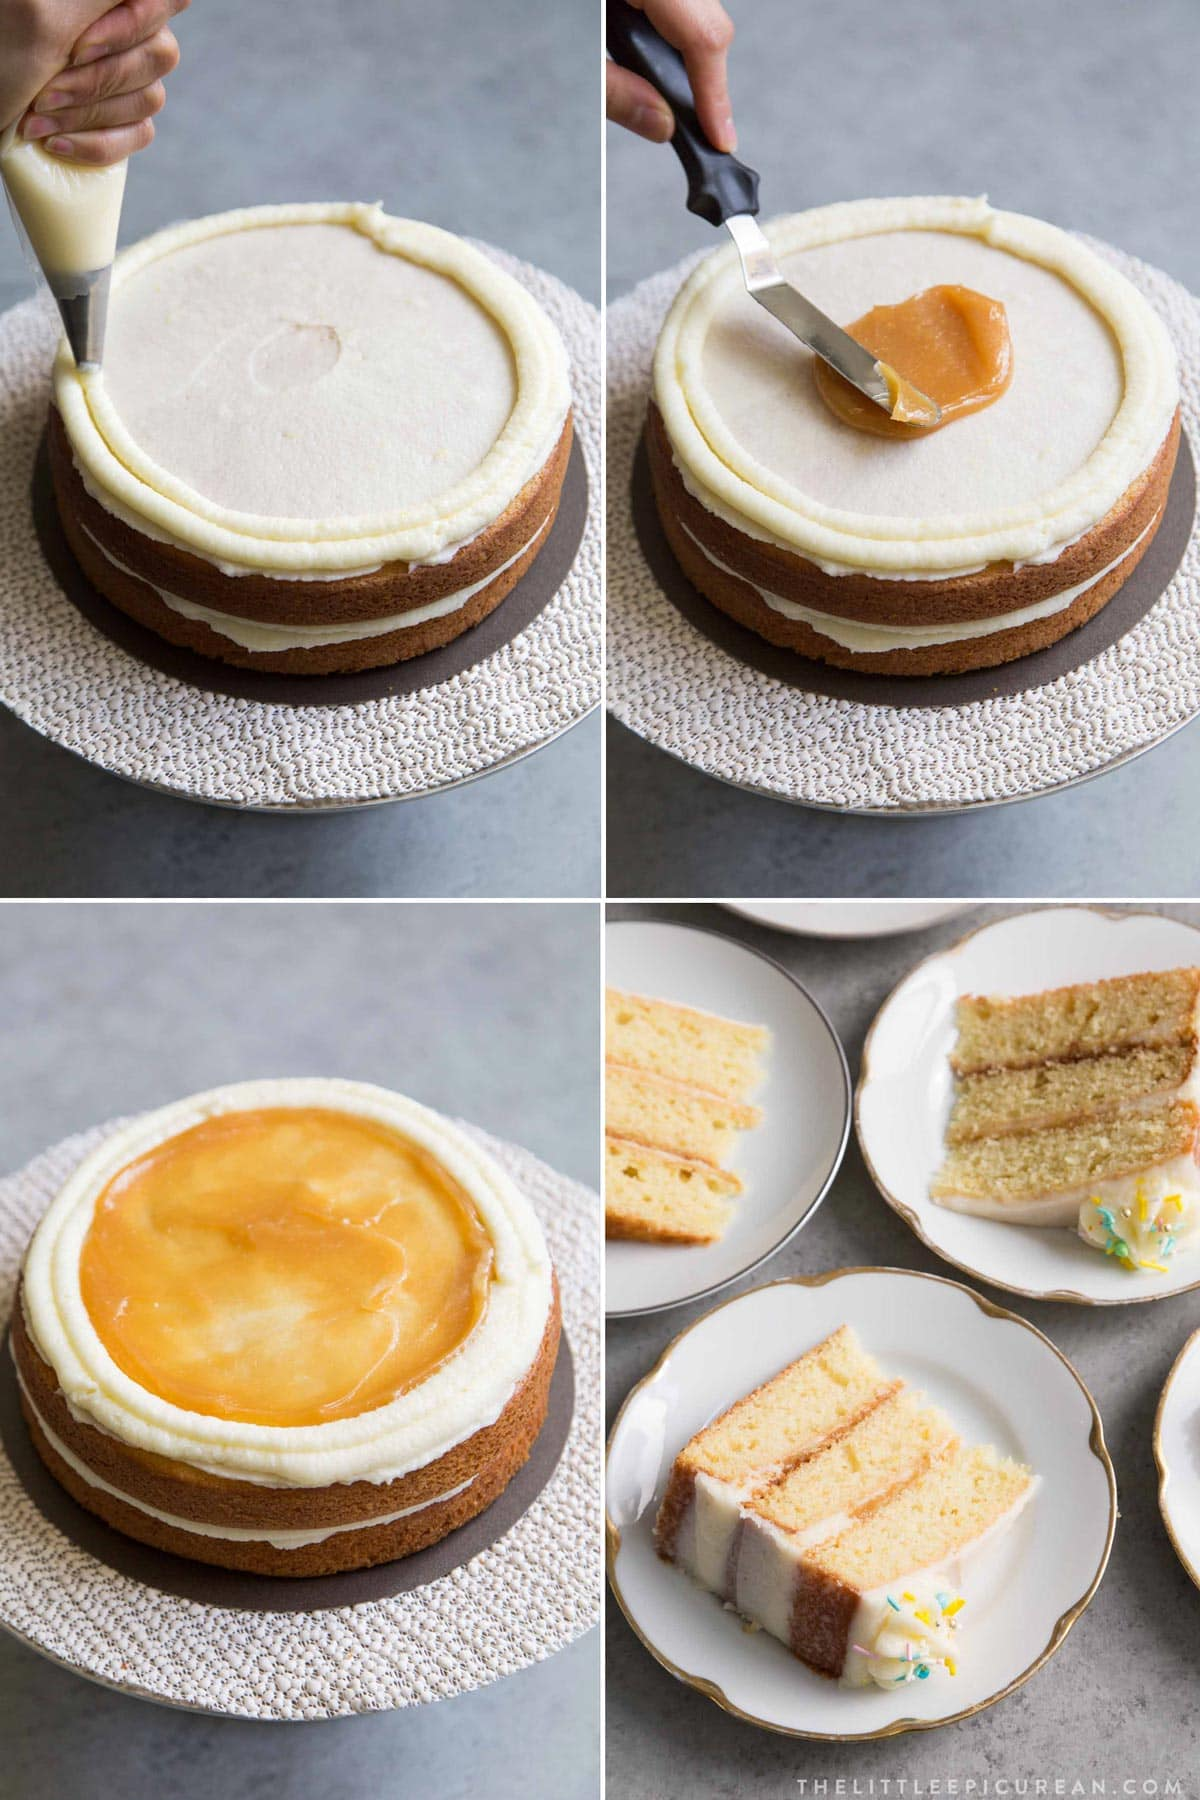 Lemon Layer Cake with Mascarpone Buttercream